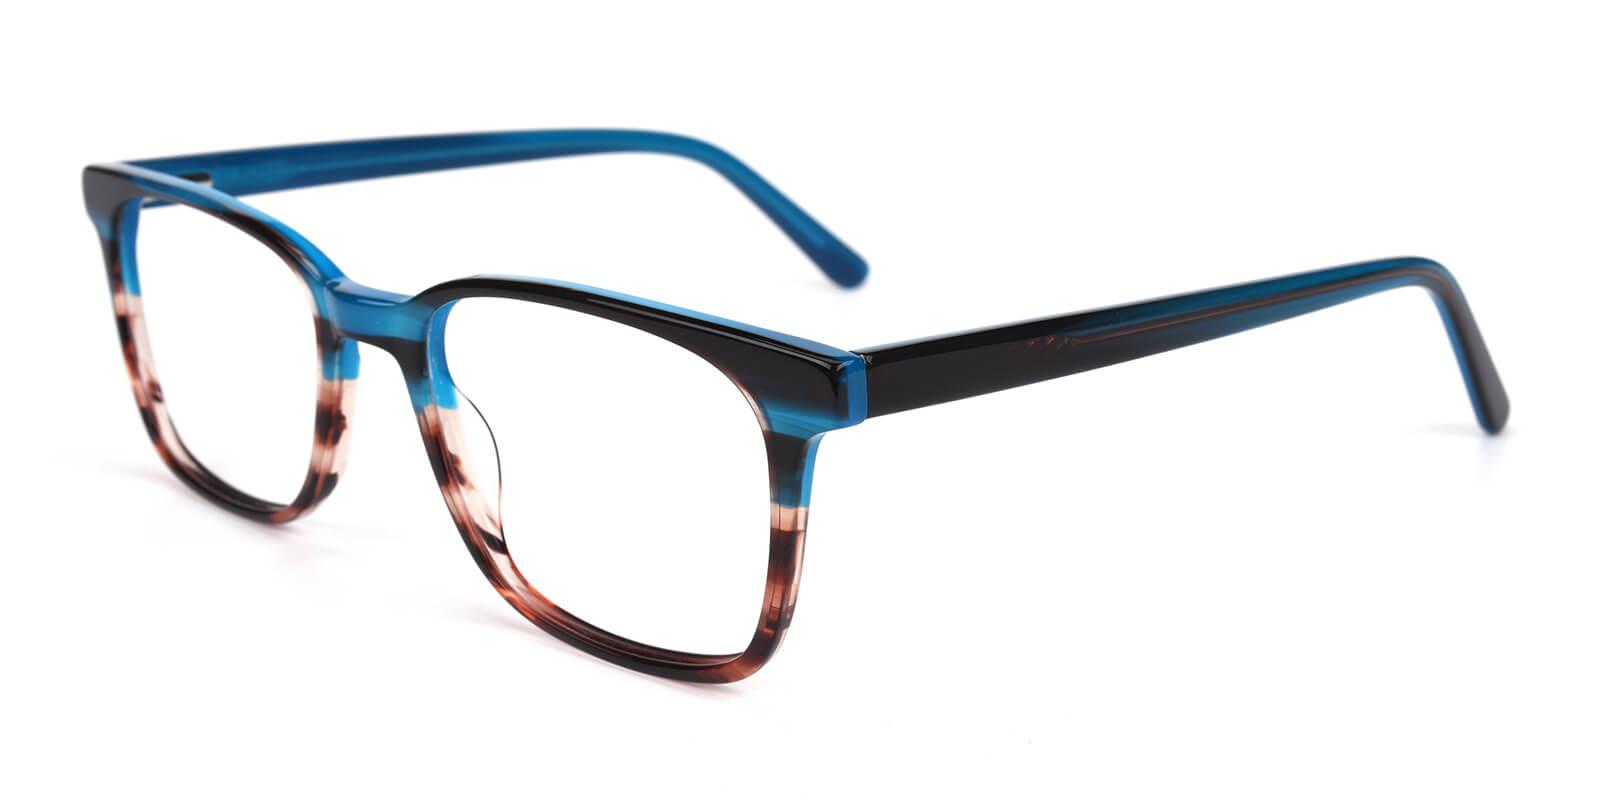 Kattan-Blue-Square-Acetate-Eyeglasses-additional1